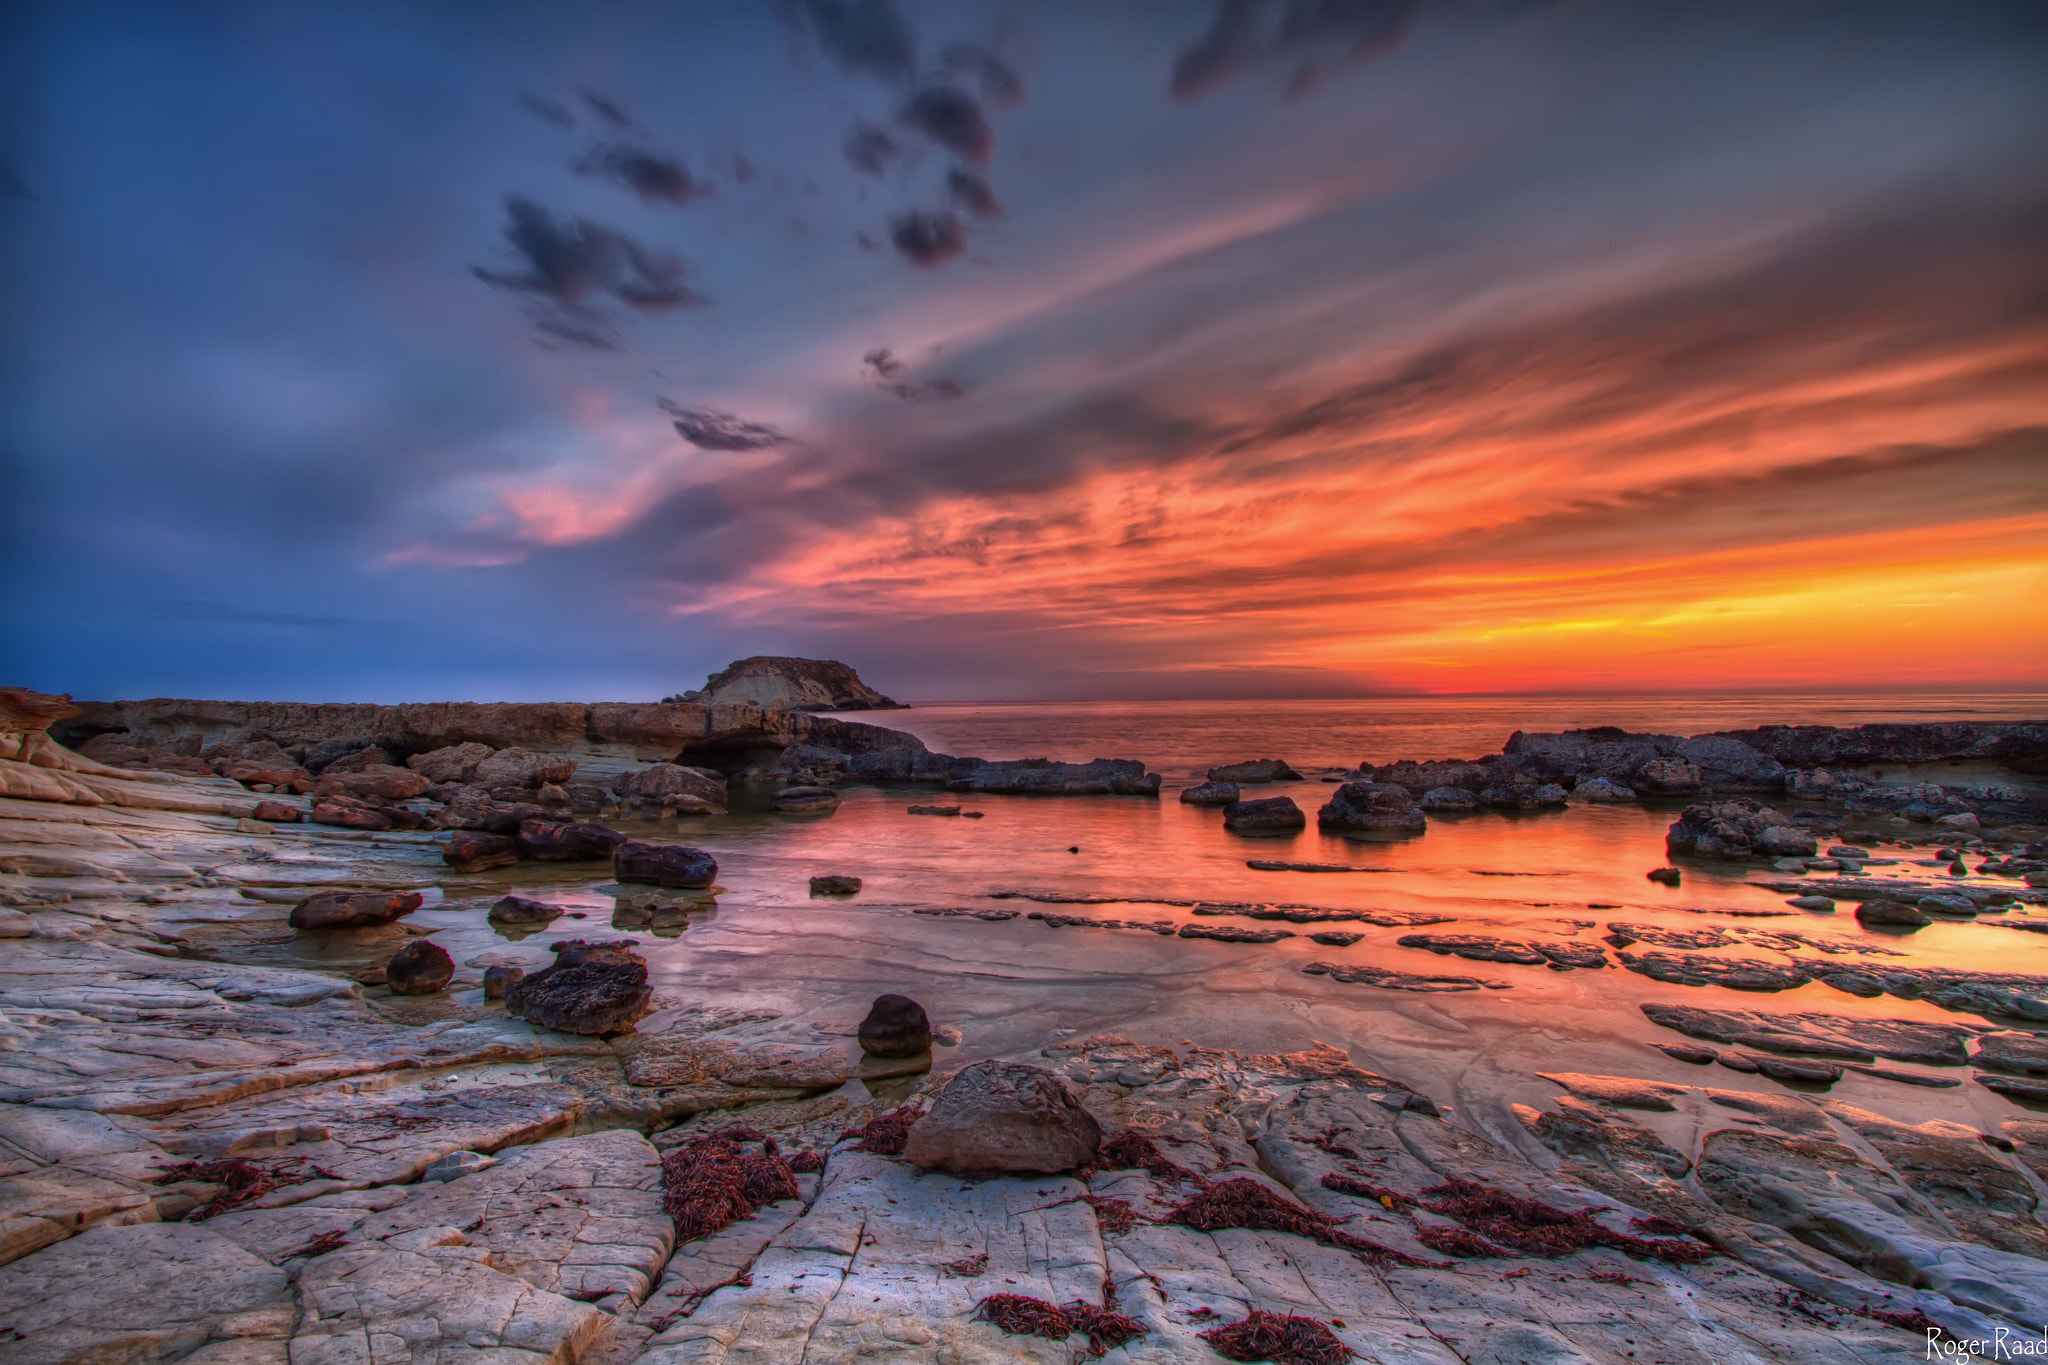 Photograph On The Rocks  by Roger Raad on 500px